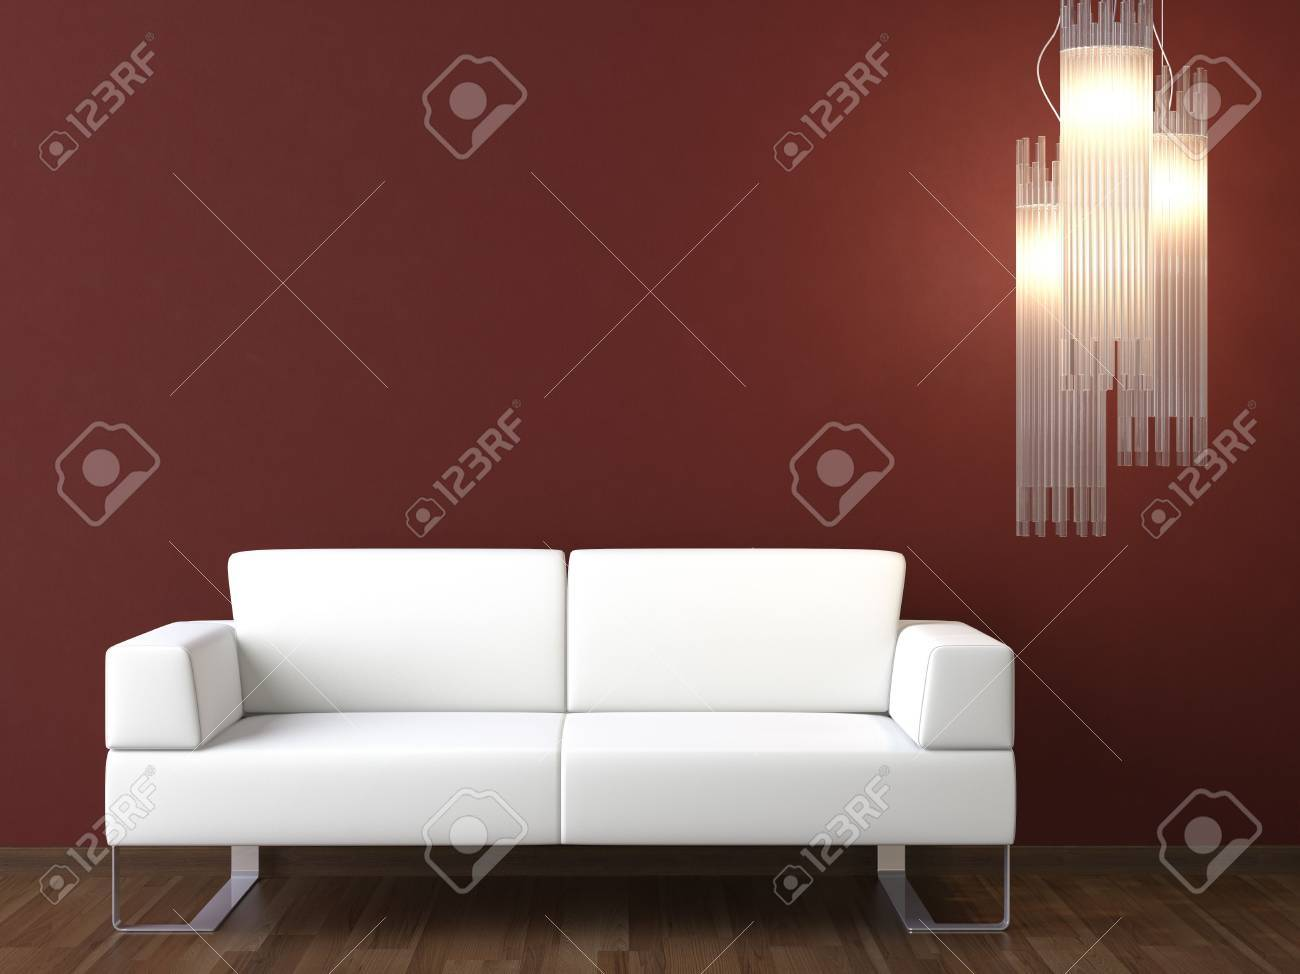 Modern White Couch interior design of modern white couch and lamp on bordeaux wall